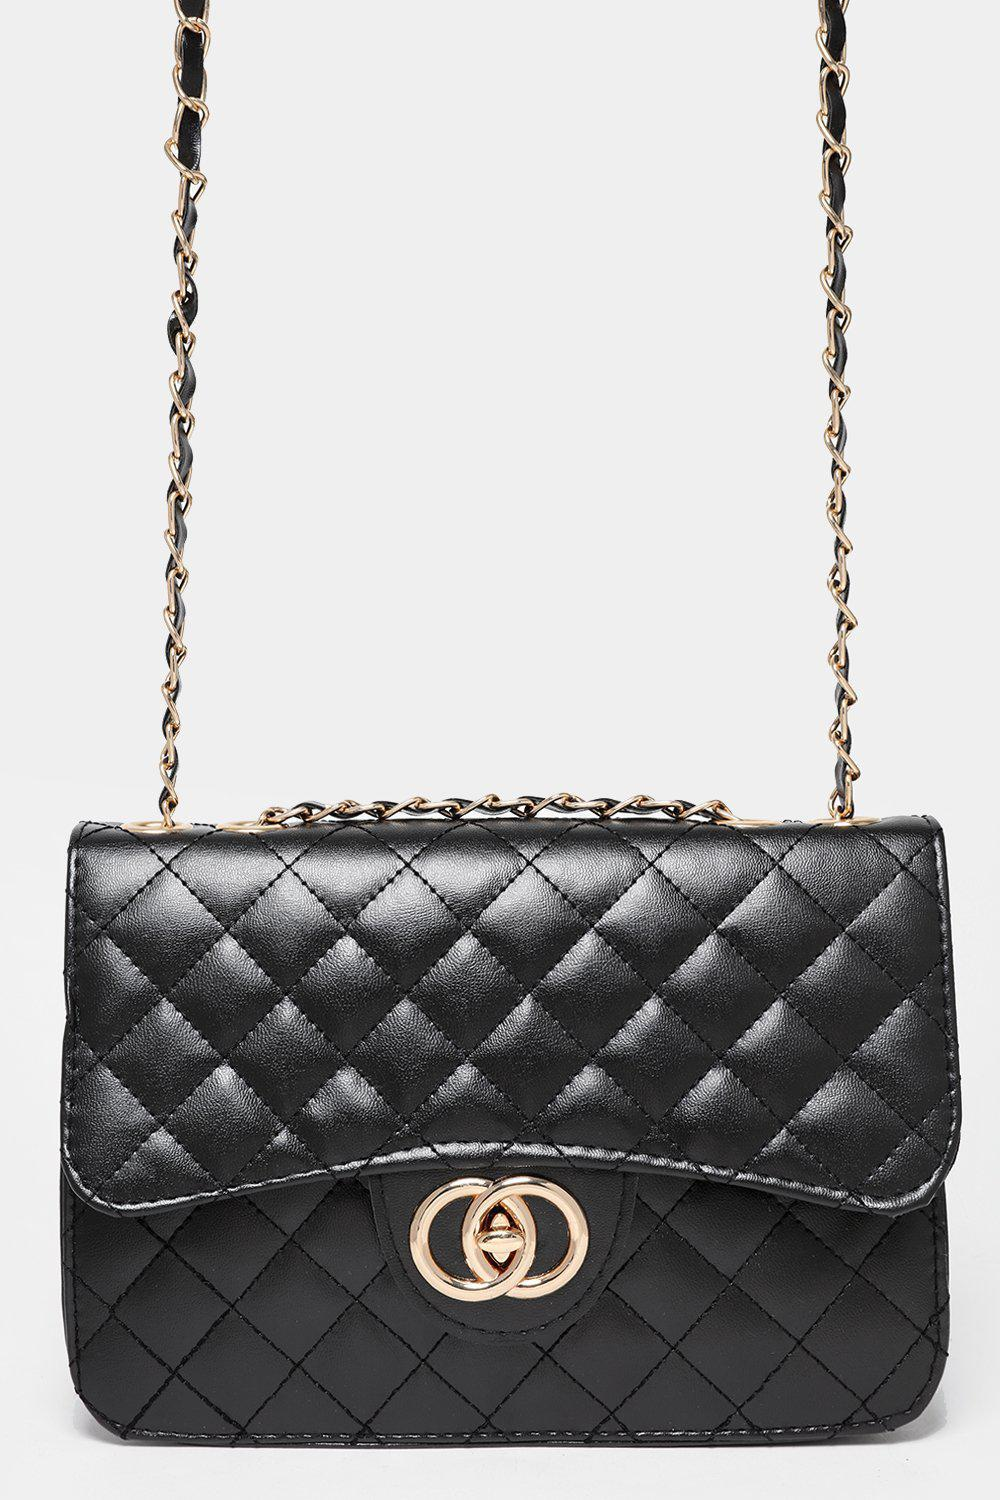 Gold Chain Strap Quilted Black Handbag